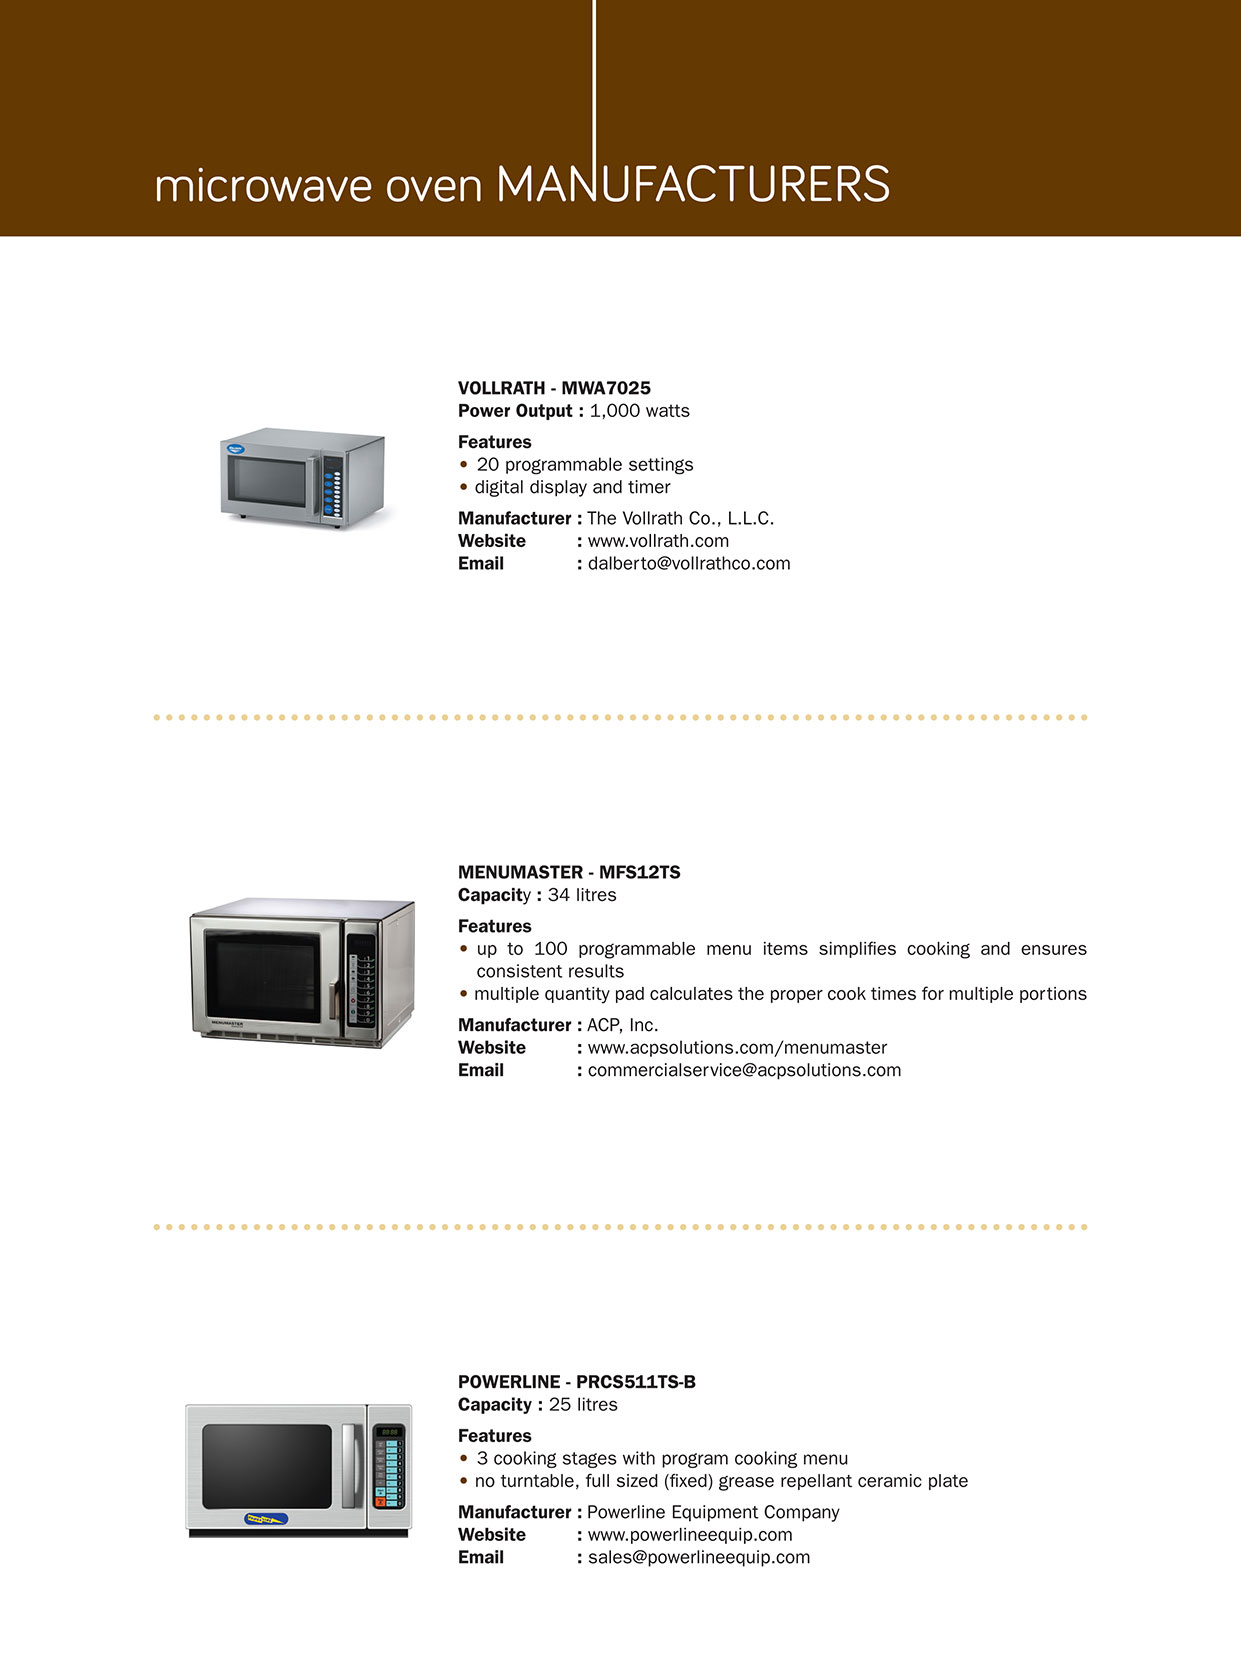 Equipment_MicrowaveOven